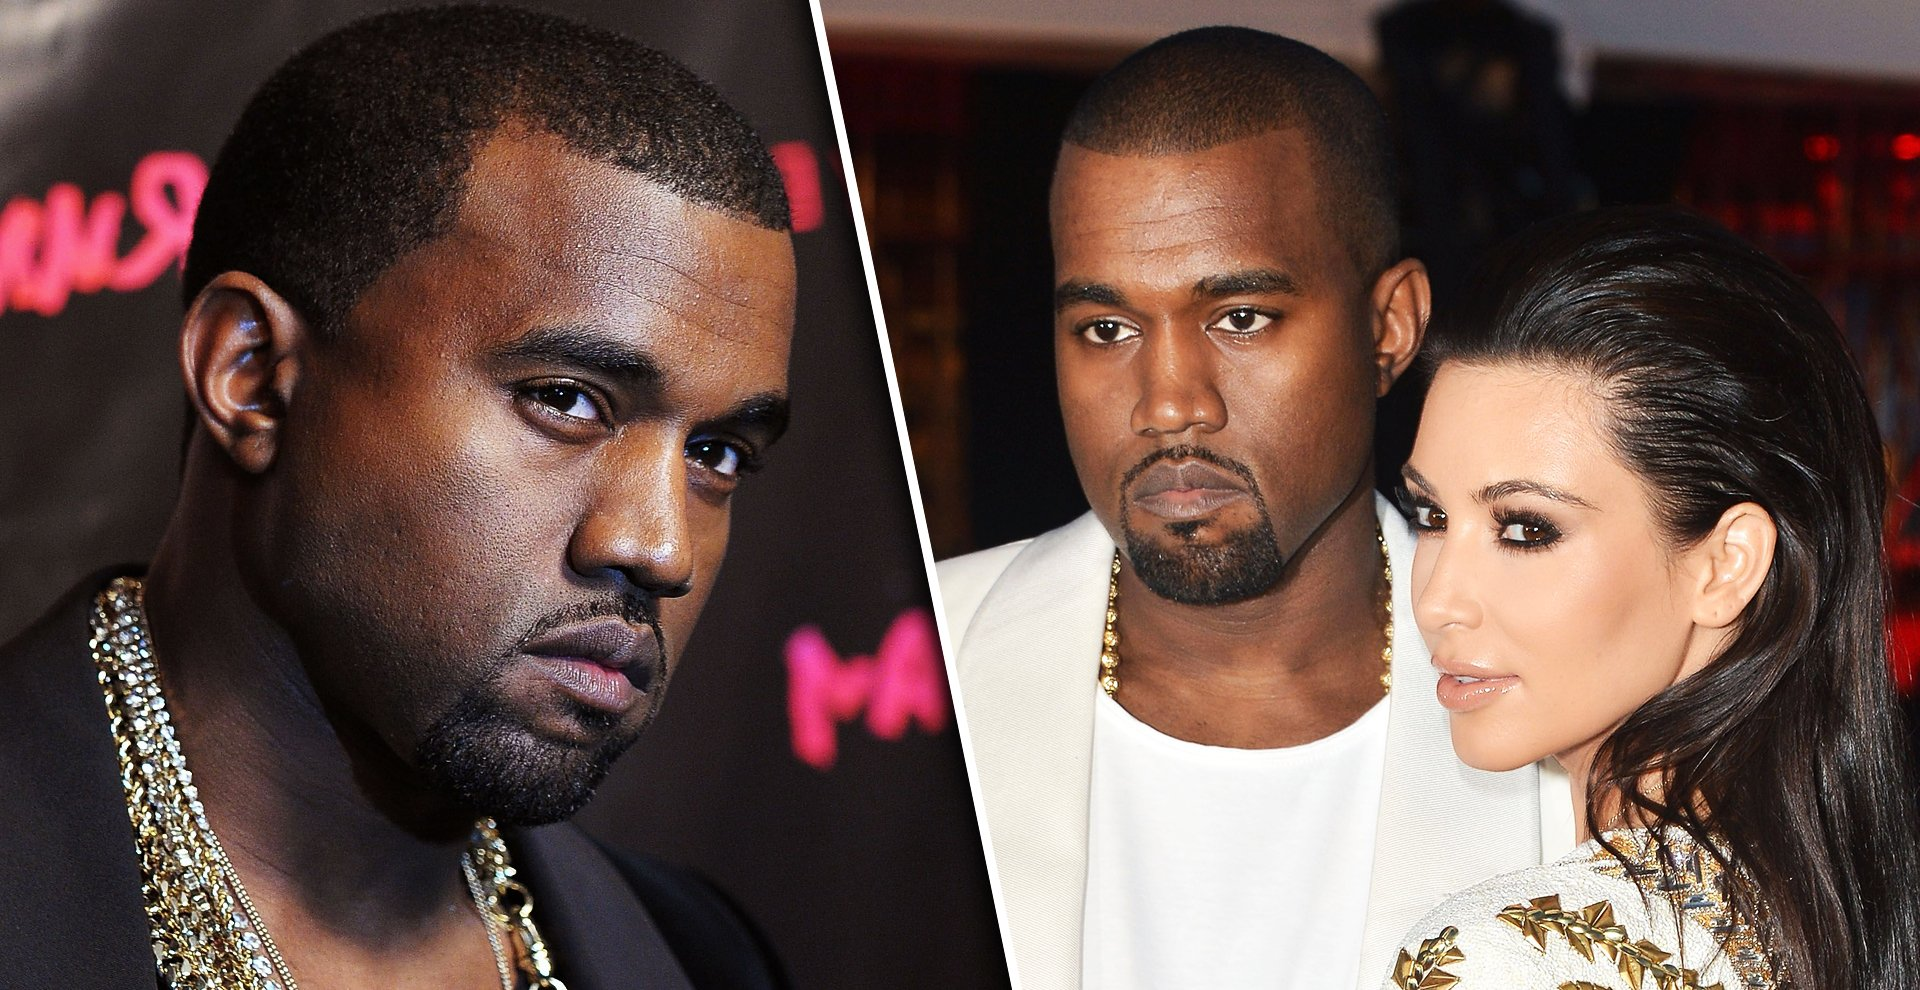 Kanye West's Evolution: From Flawed Rapper To Awakened Politician